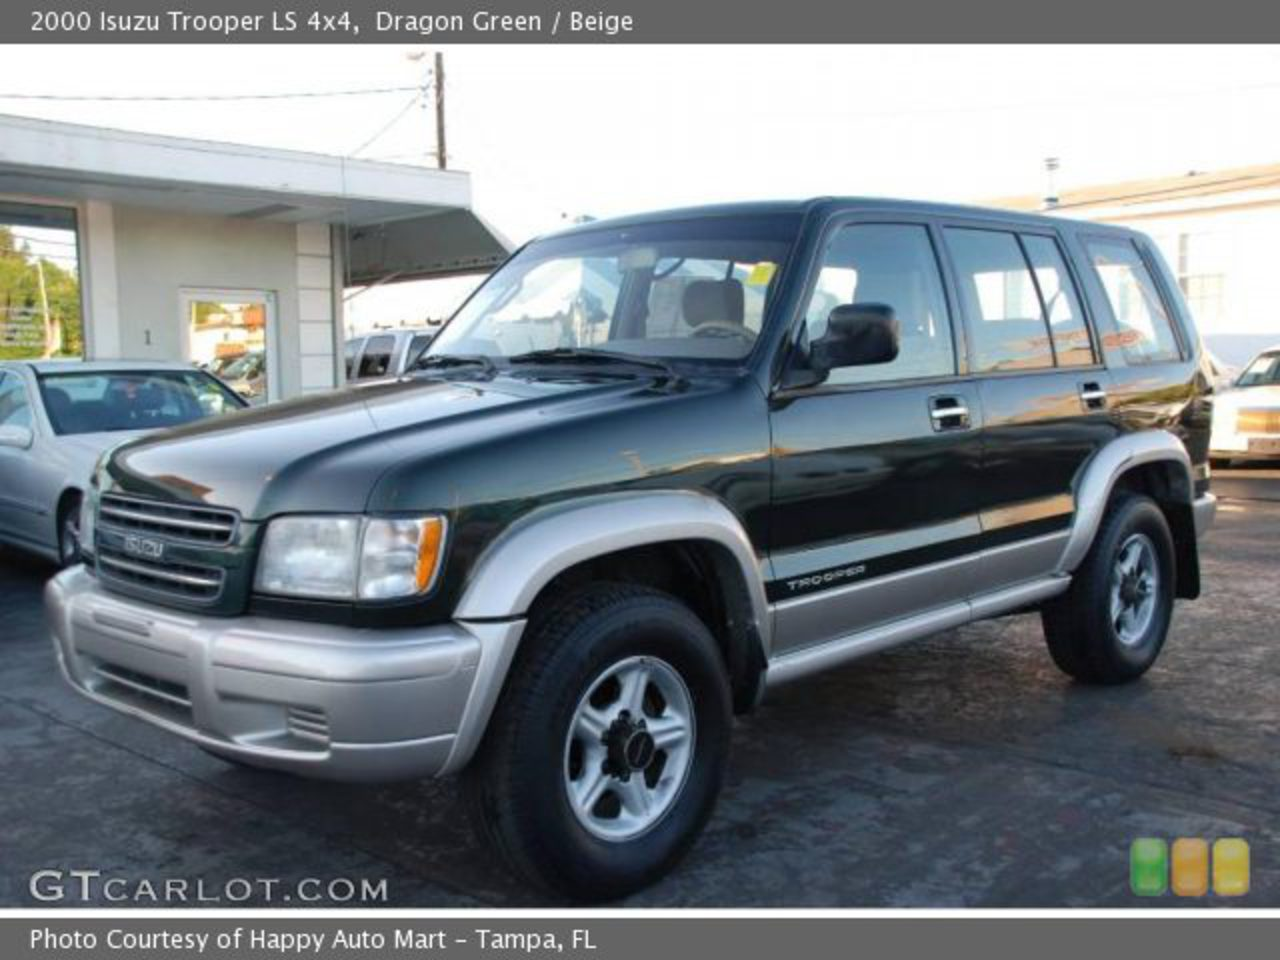 Topworldauto Photos Of Isuzu Trooper 26 4x4 Photo Galleries